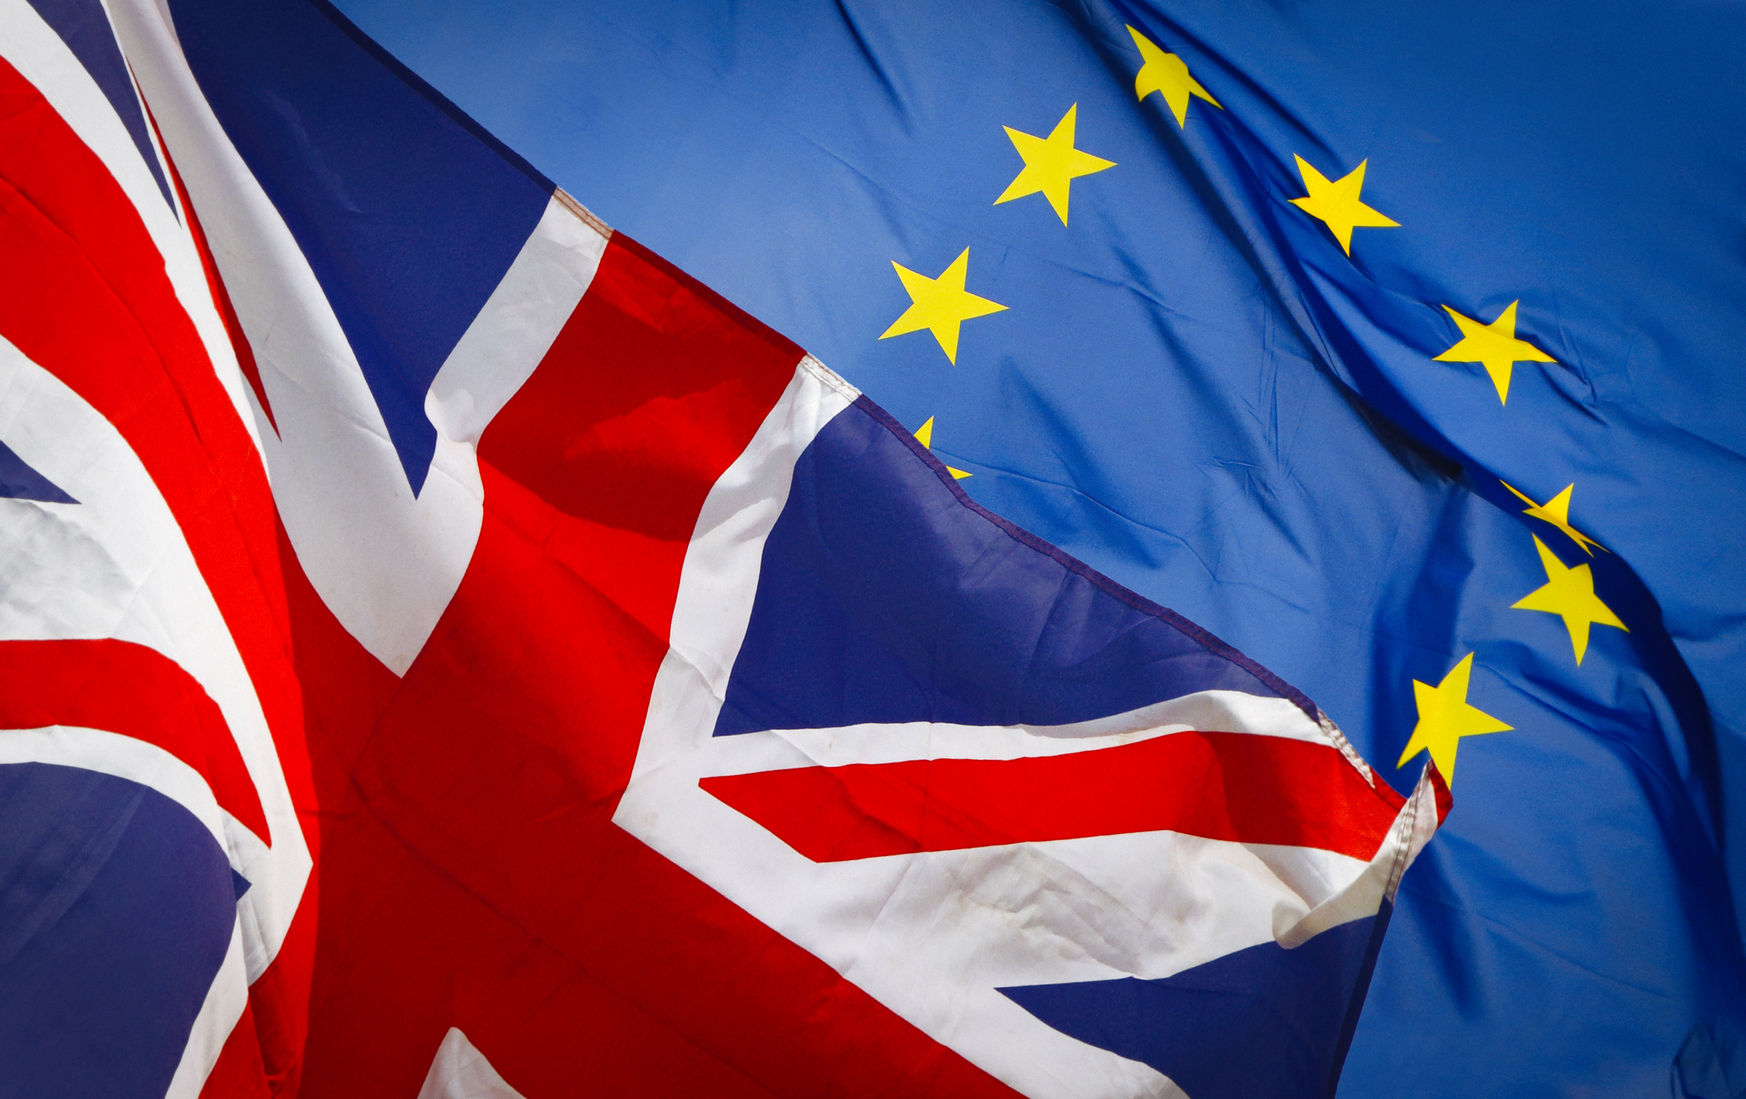 Brexit and flags of UK and EU